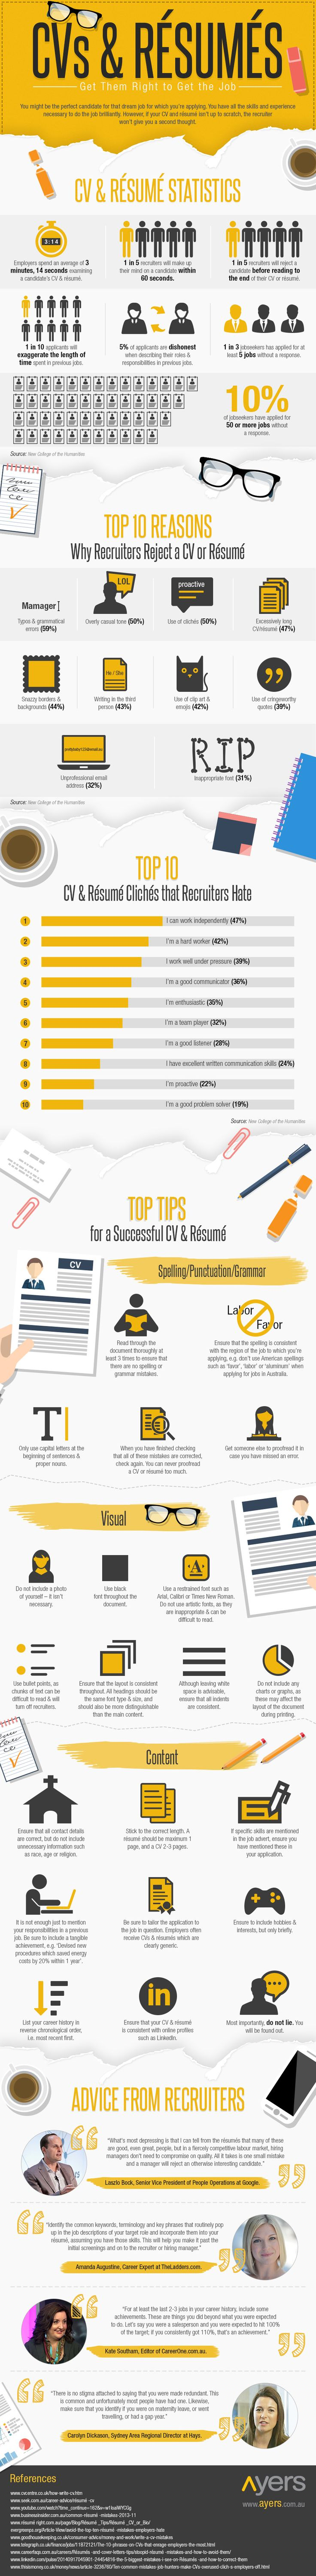 The CVs & Resumes: Get Them Right to Get the Job Infographic presents what is best to include so that your application will stand out from the pile.